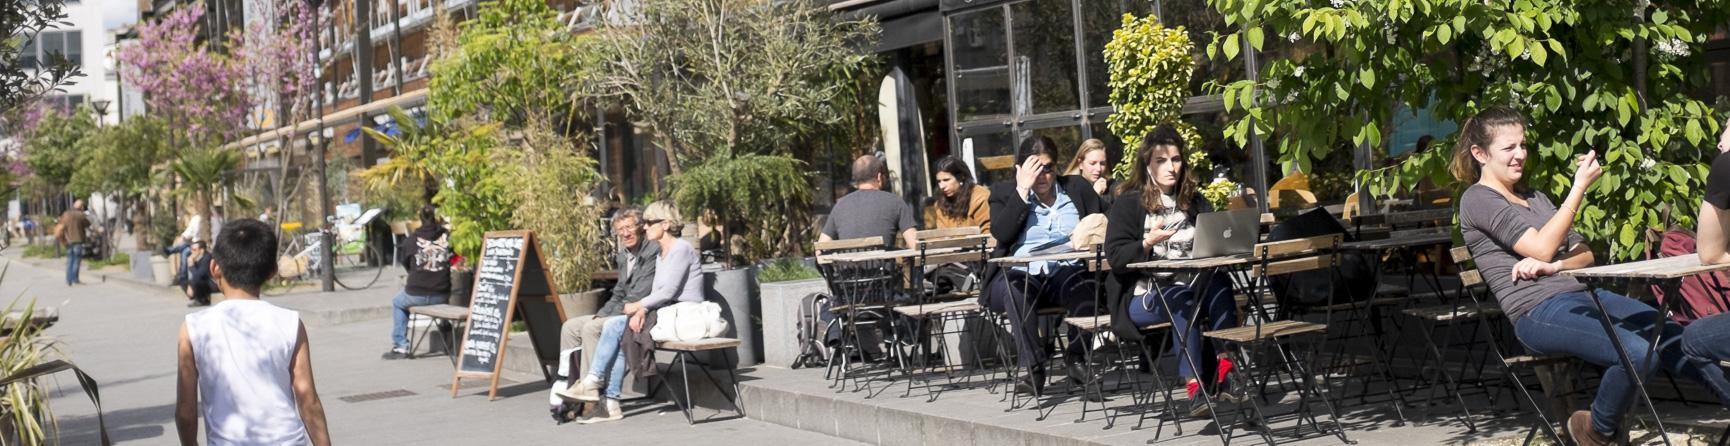 People sitting outside a cafe in the 18th Arrt.